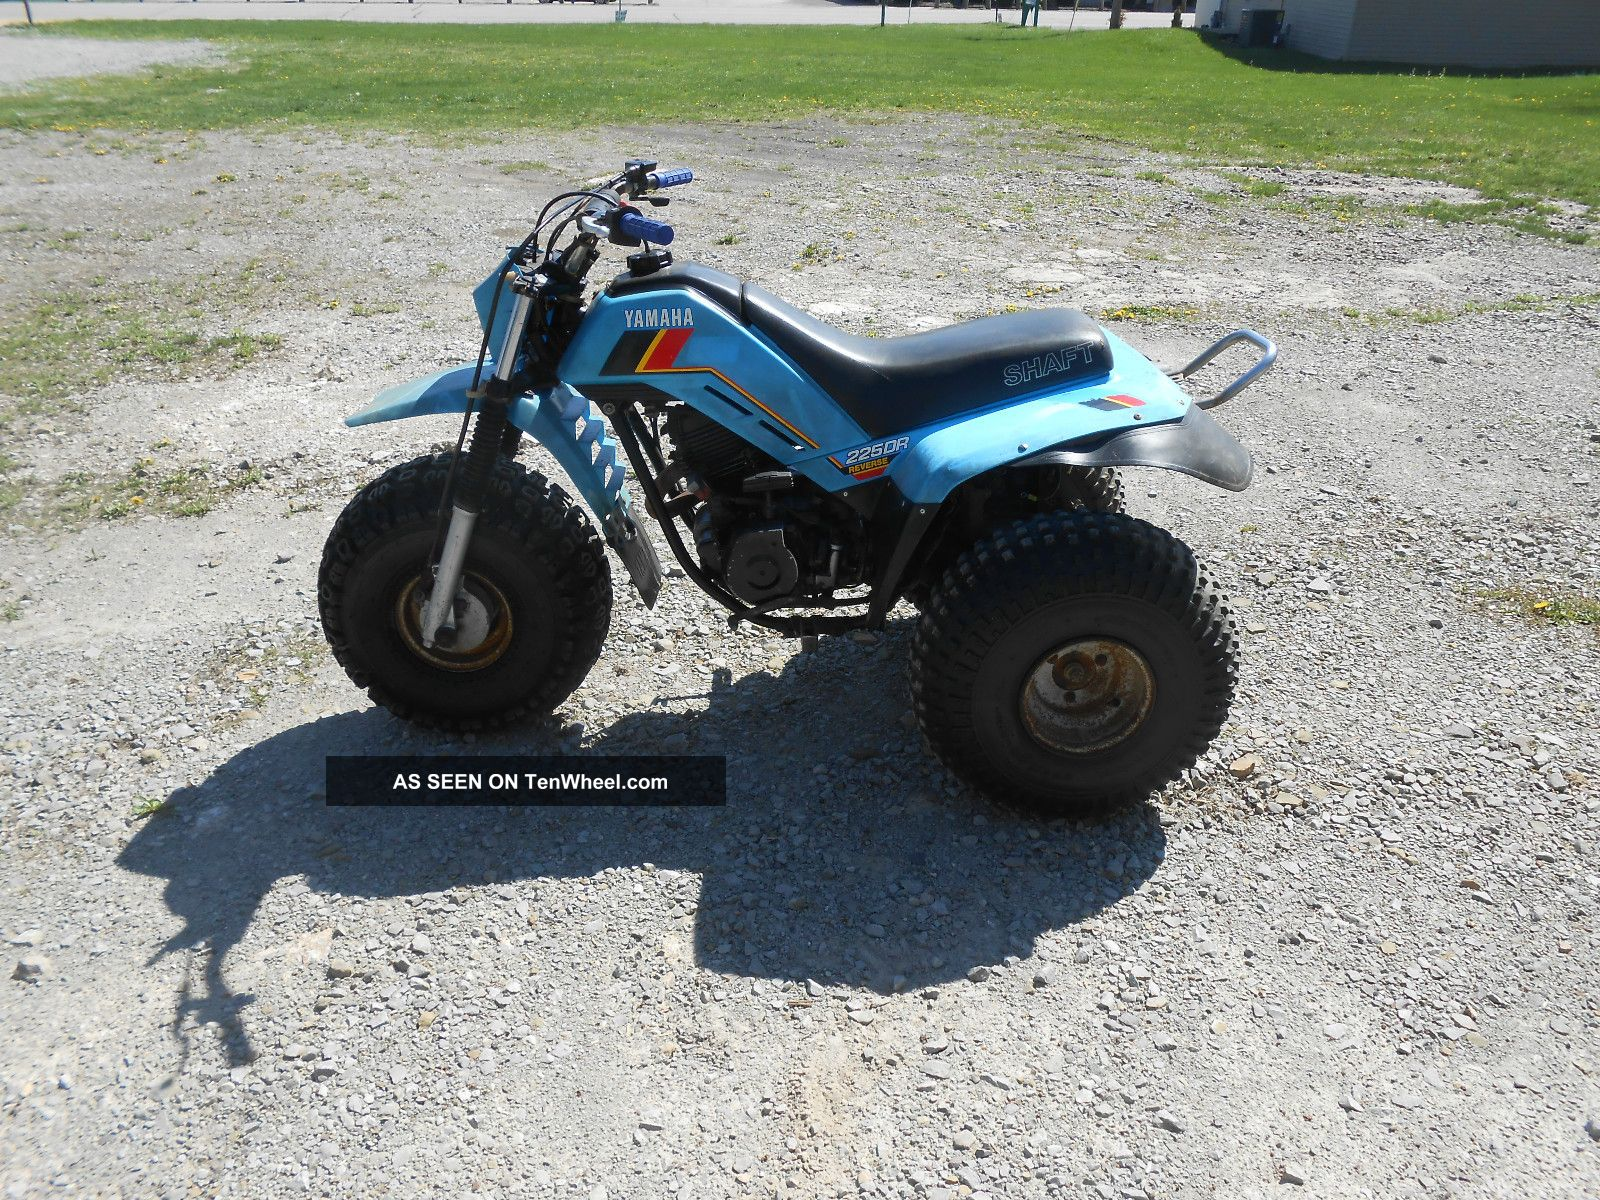 1985 yamaha 225 3 wheeler pictures to pin on pinterest